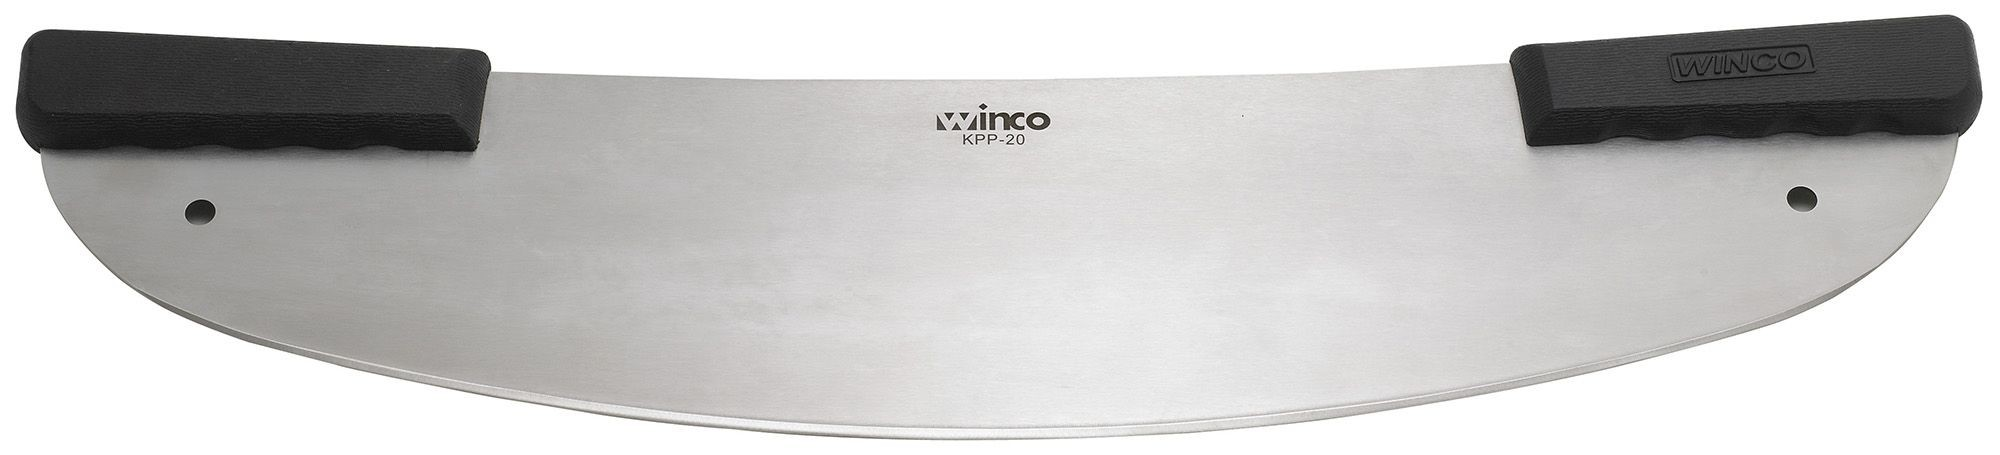 Winco KPP-20Rocker Pizza Knife with Polypropene Handle 20""